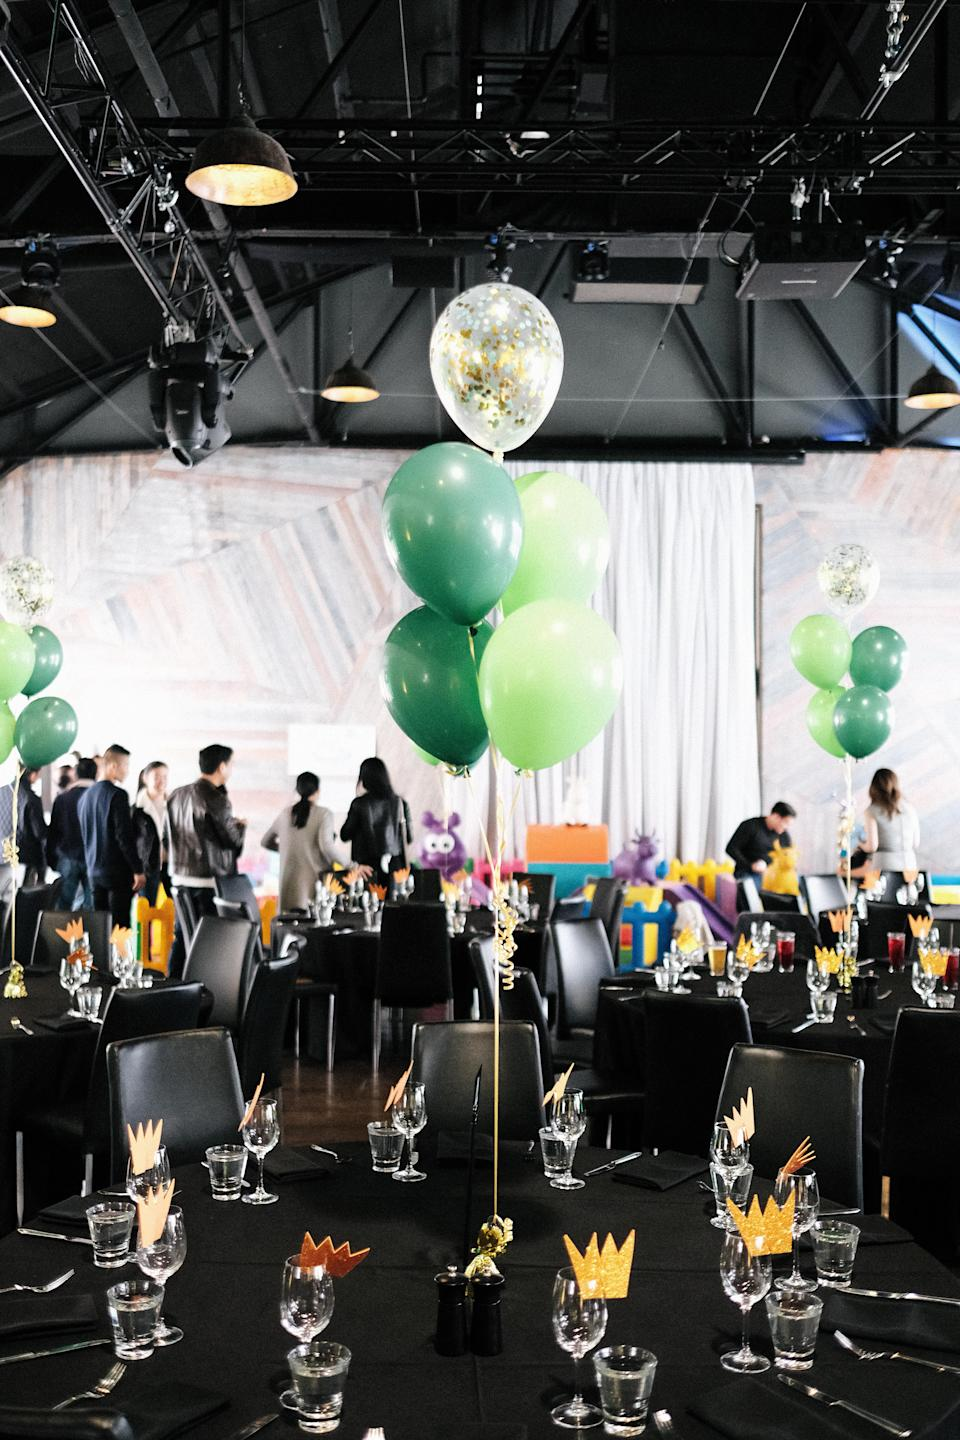 She hired a waterfront Melbourne restaurant and kitted it out with balloons and handcrafted decorations. Source: Supplied/JackieLam